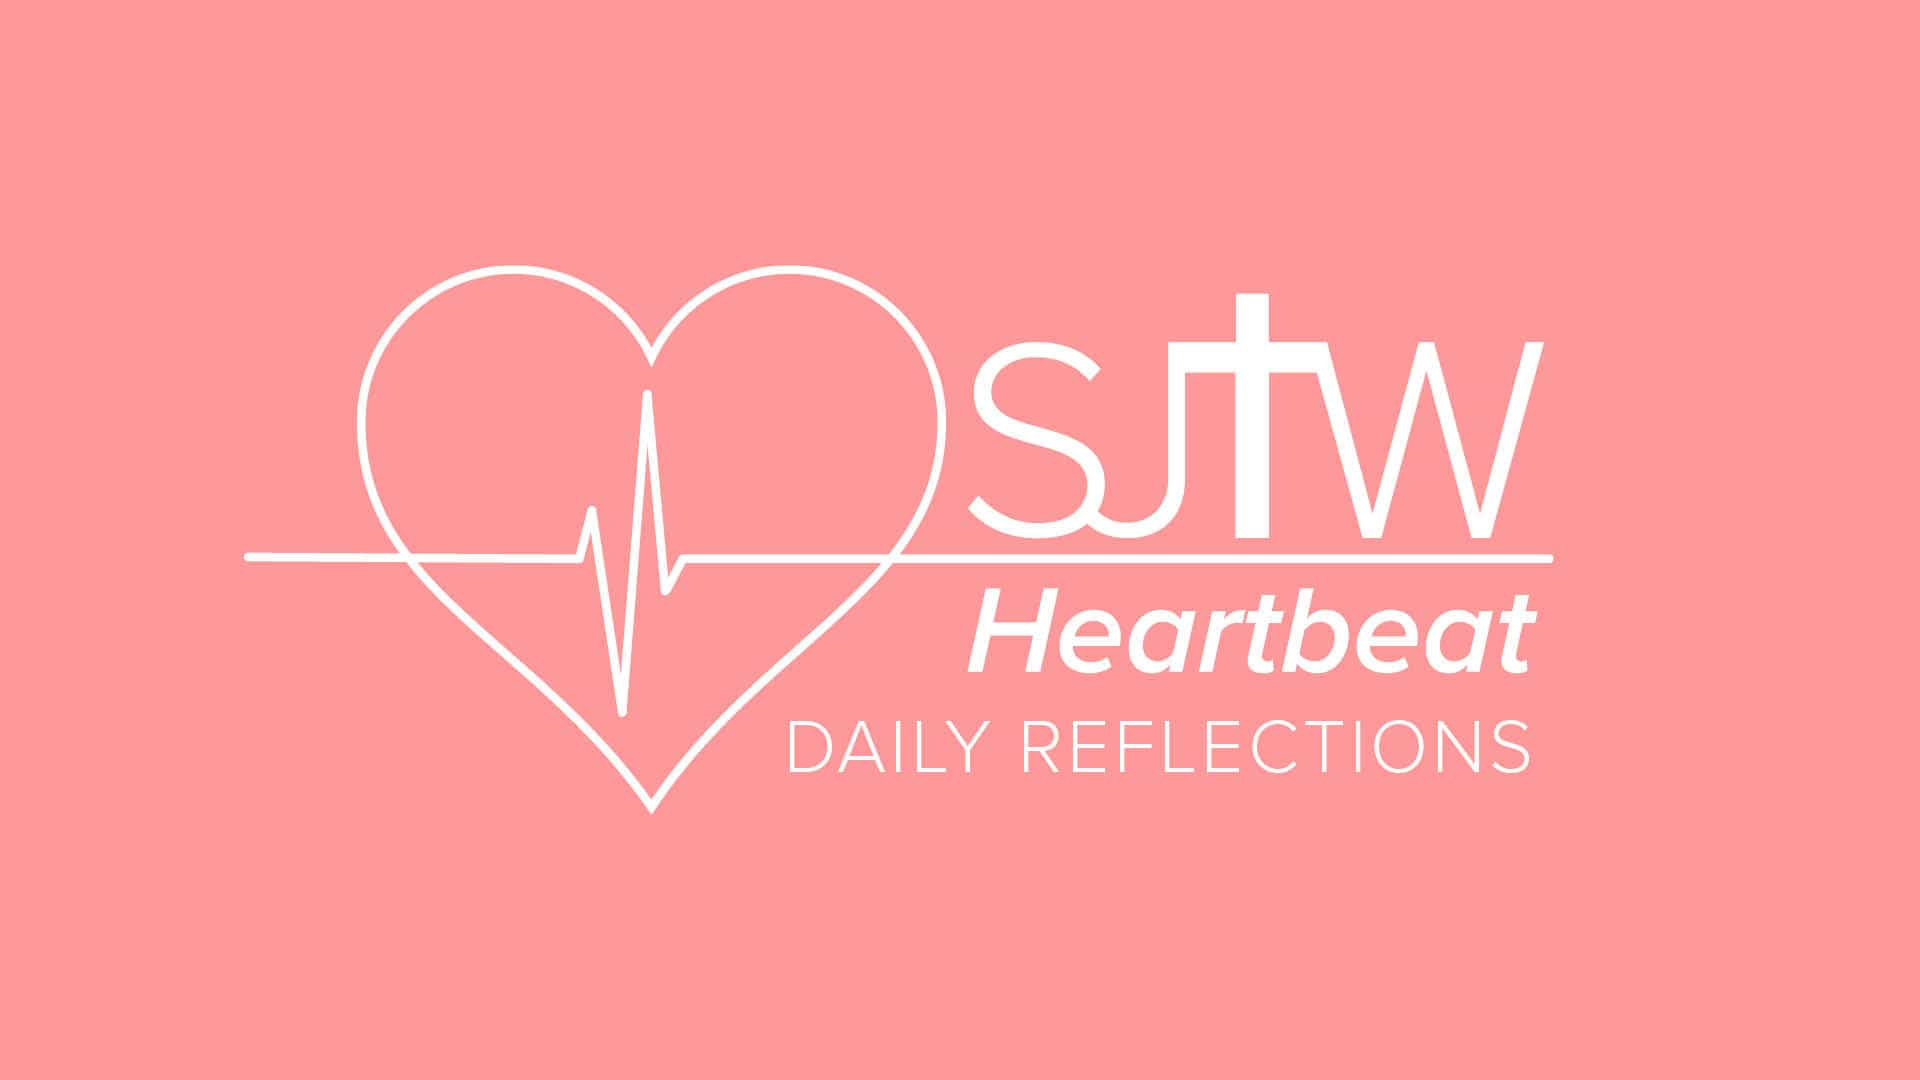 Parish Heartbeat Daily Reflections